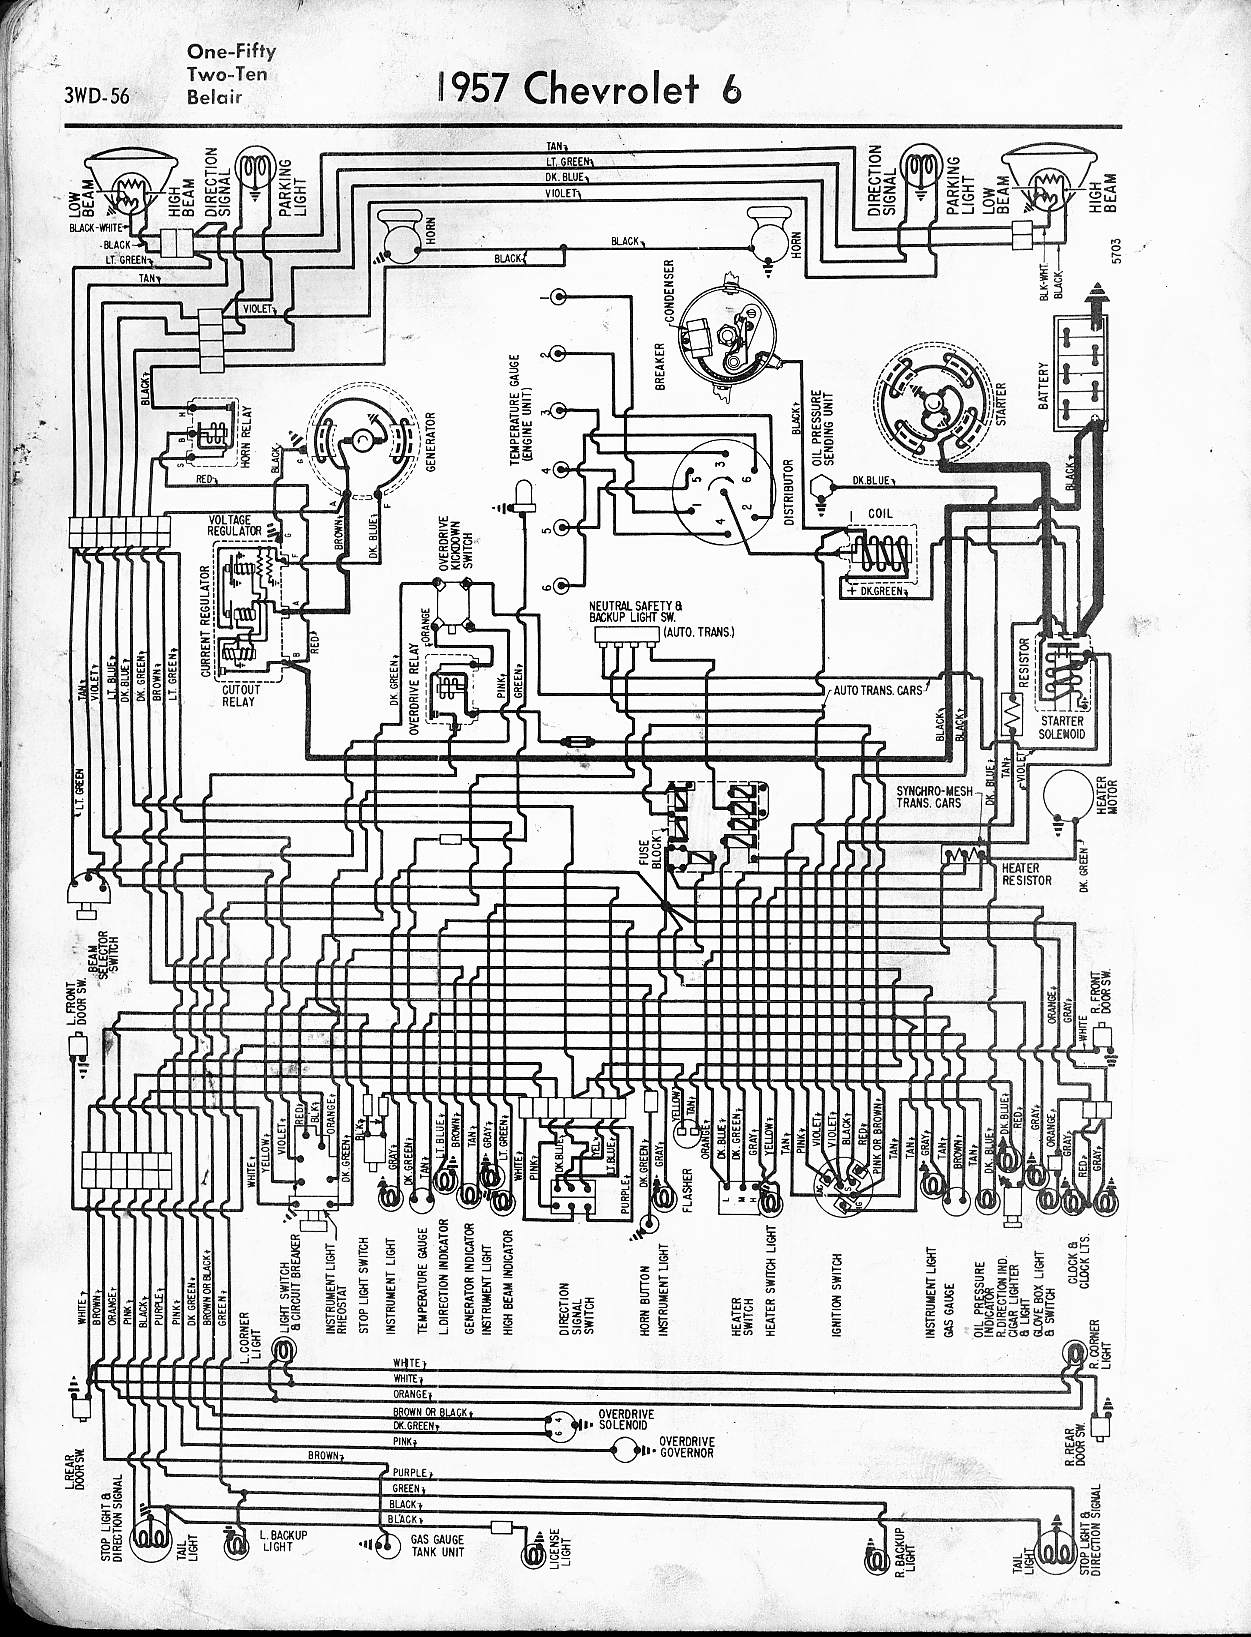 57 Pontiac Wiring Diagram Reinvent Your 2003 Sunfire Headlight Harness 1957 Chevy Wire Schematics Rh Sylviaexpress Com Starter Grand Prix Diagrams